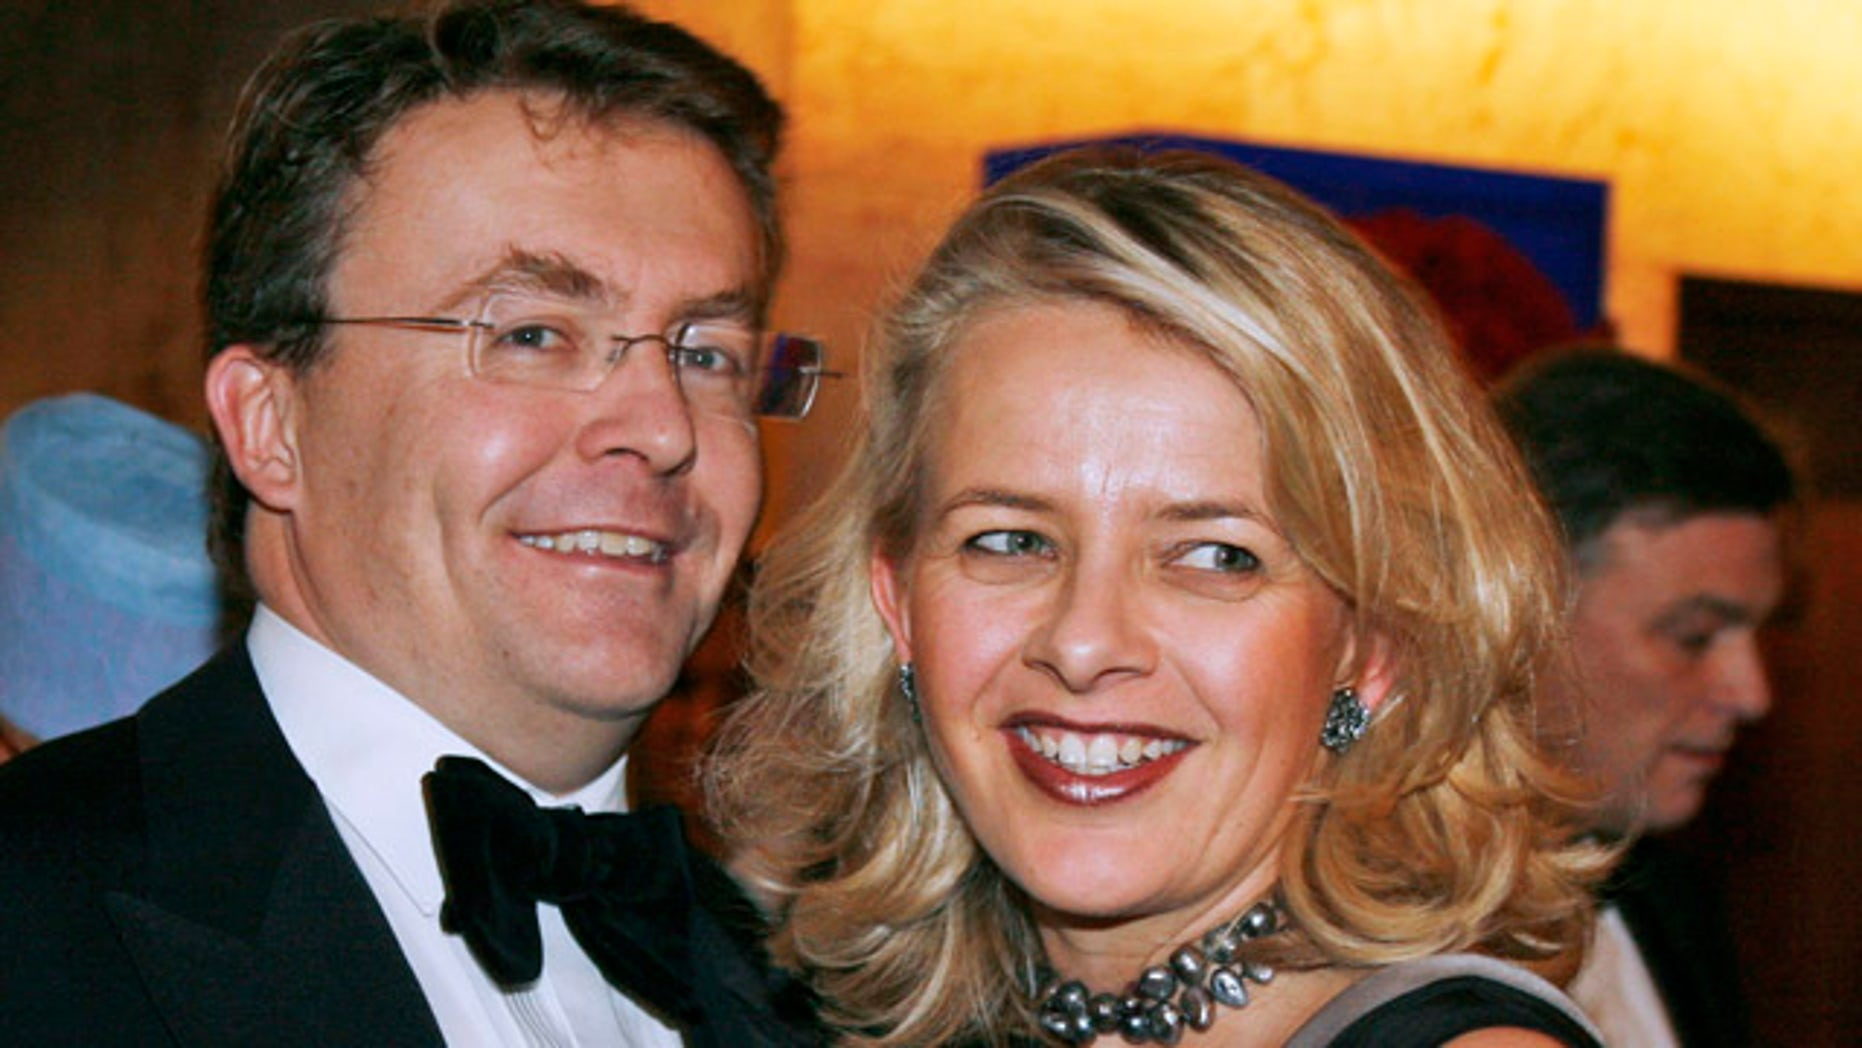 Dec. 2008 FILE: Dutch Prince Johan Friso, left, and his wife Mabel, as they arrive for a gala dinner in honor of Nobel Peace Prize laureate Martti Ahtisaari, former President of Finland.